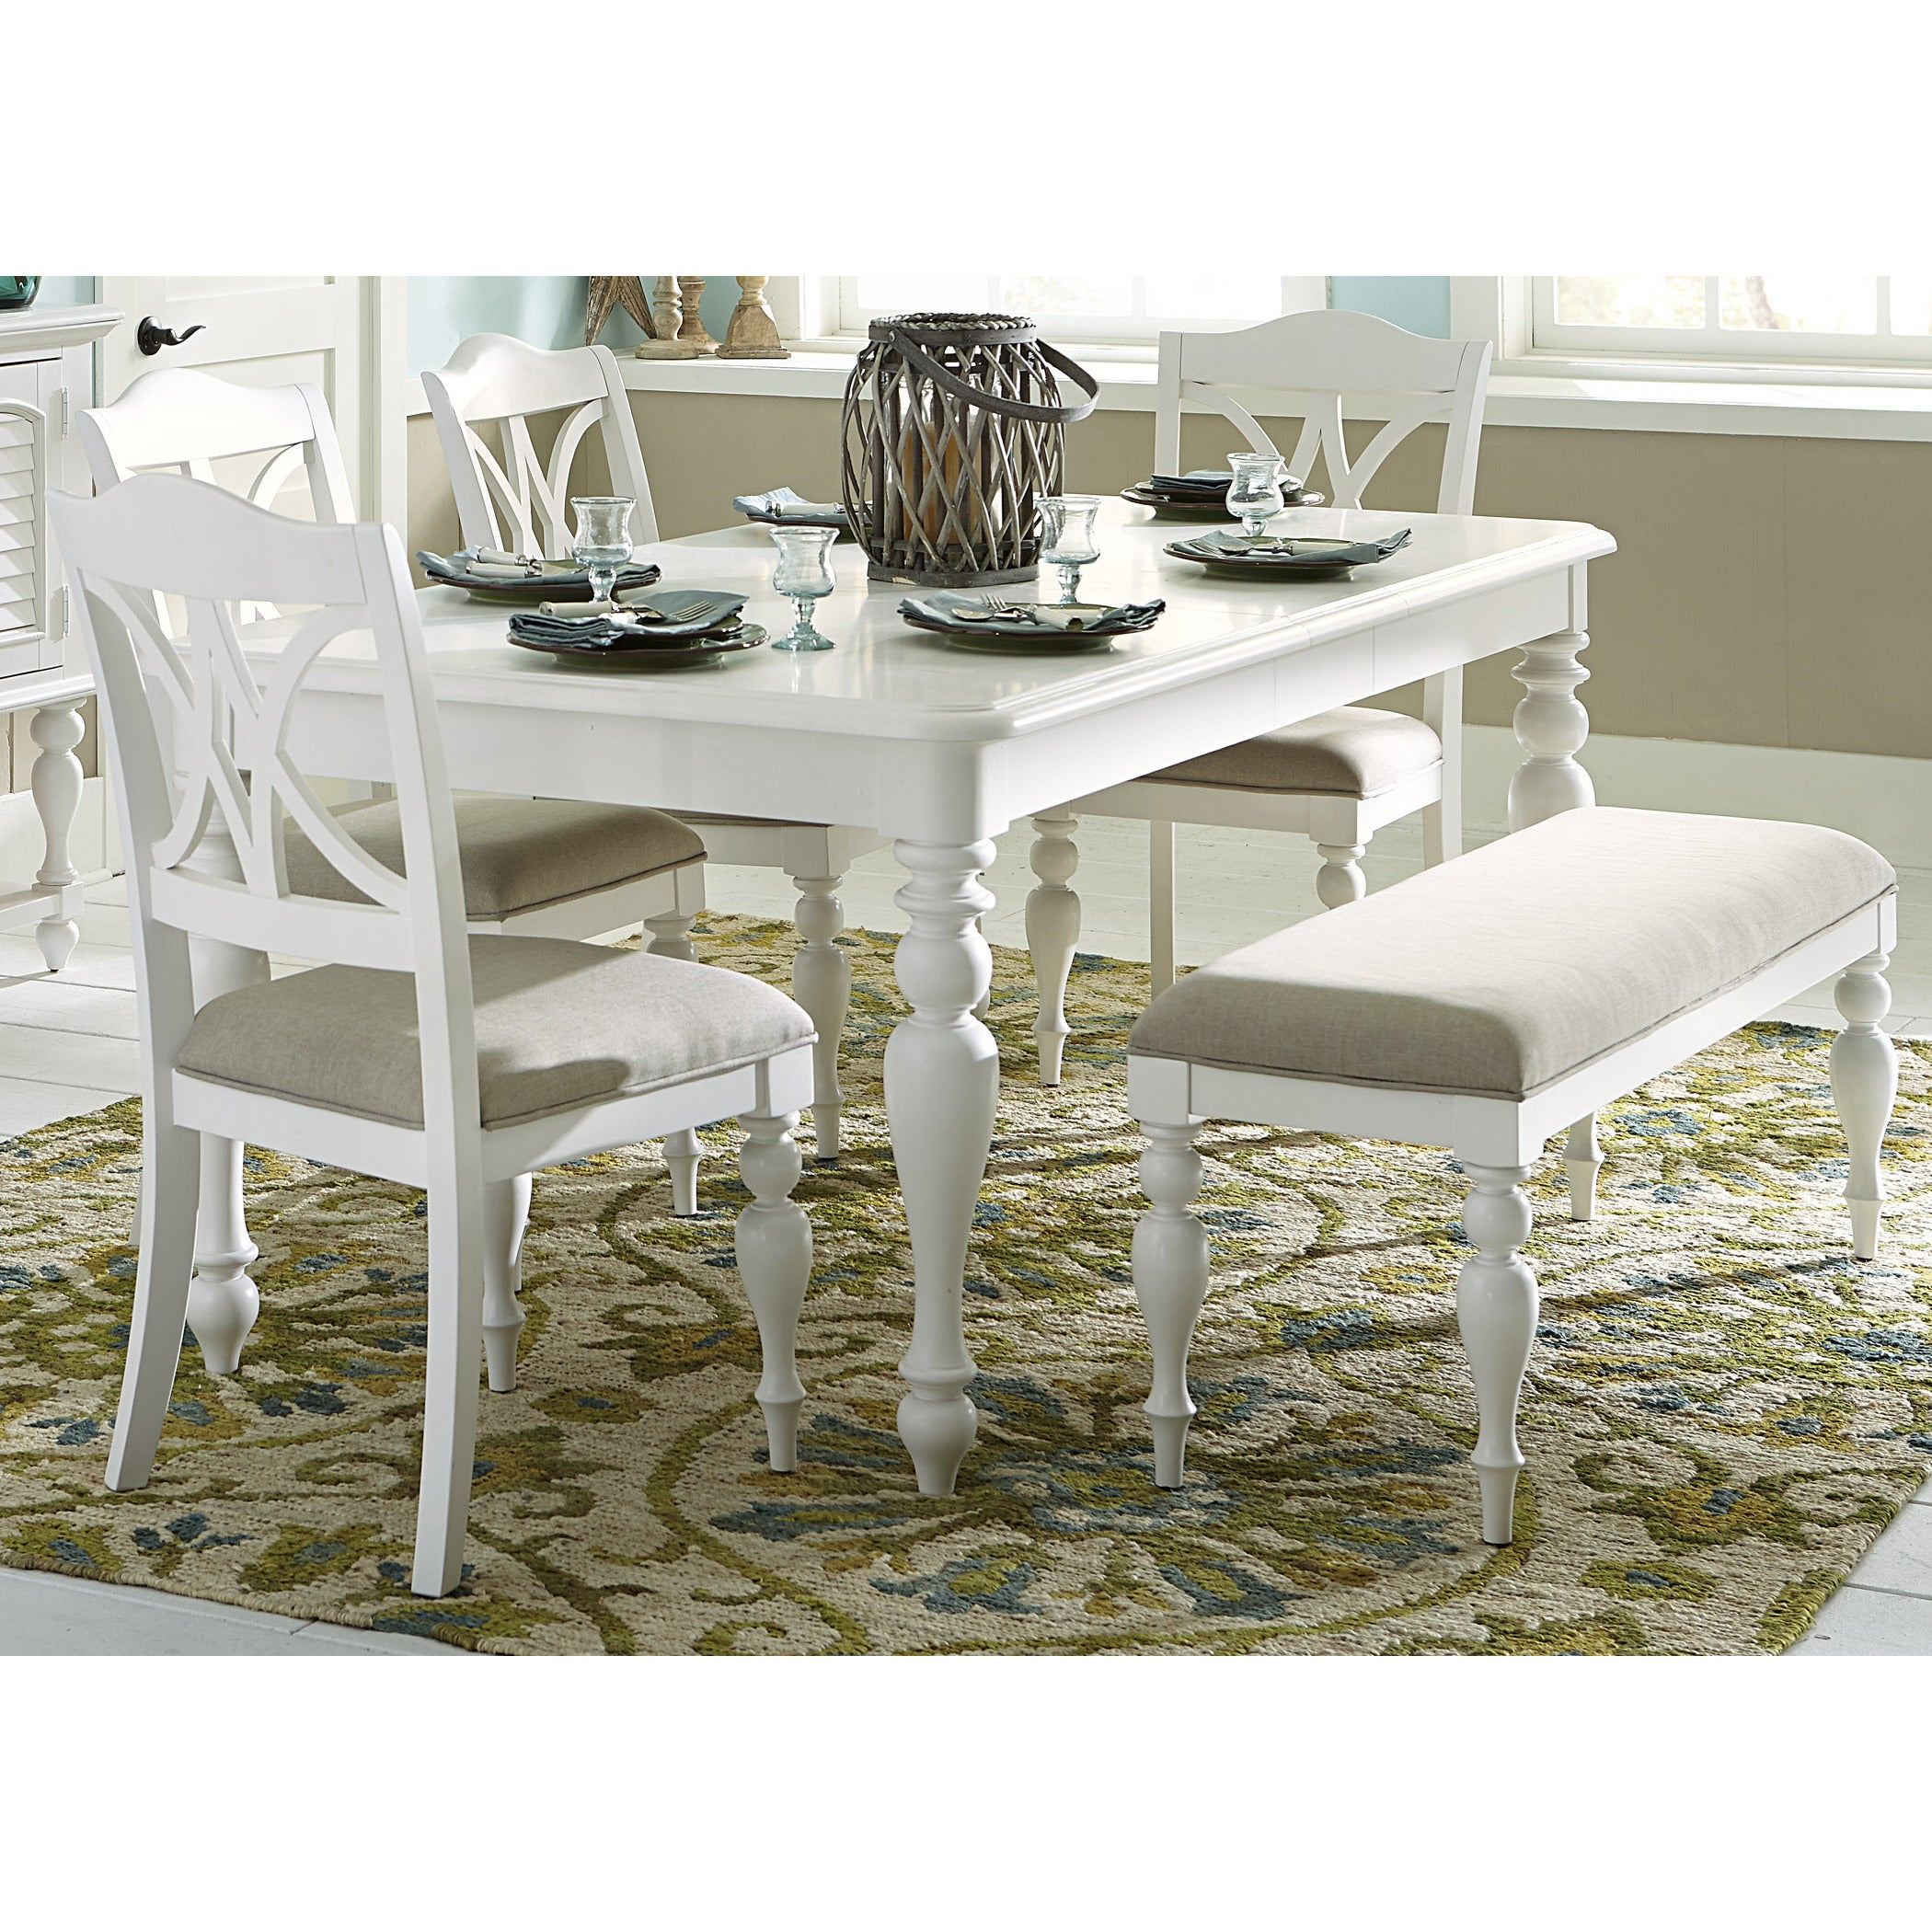 Summer Cottage White Dinette Table Free Shipping Today 10664664